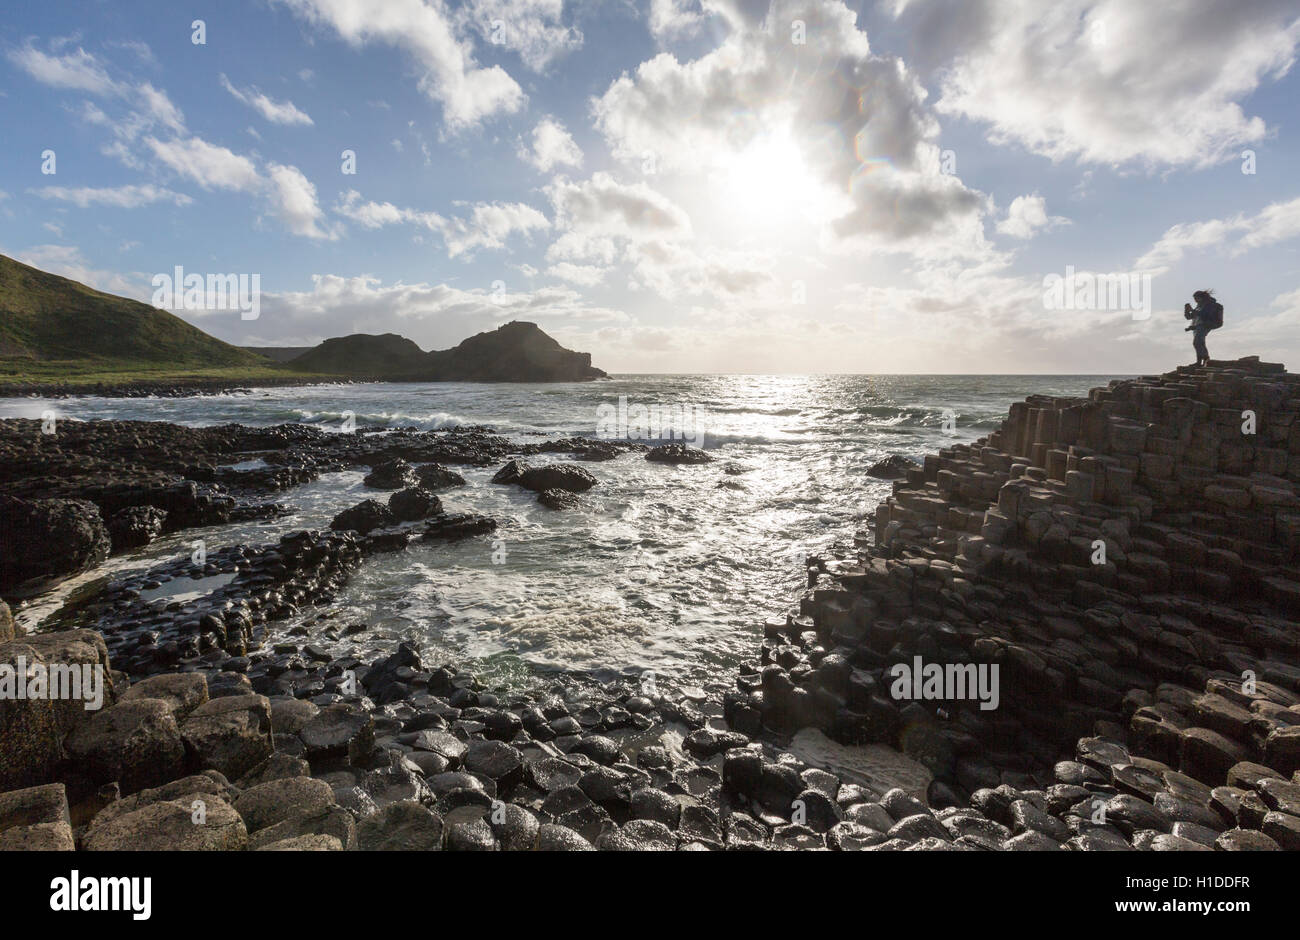 Tourist taking picture in Giant's Causeway at sunset, Bushmills, County Antrim, Northern Ireland, UK Stock Photo